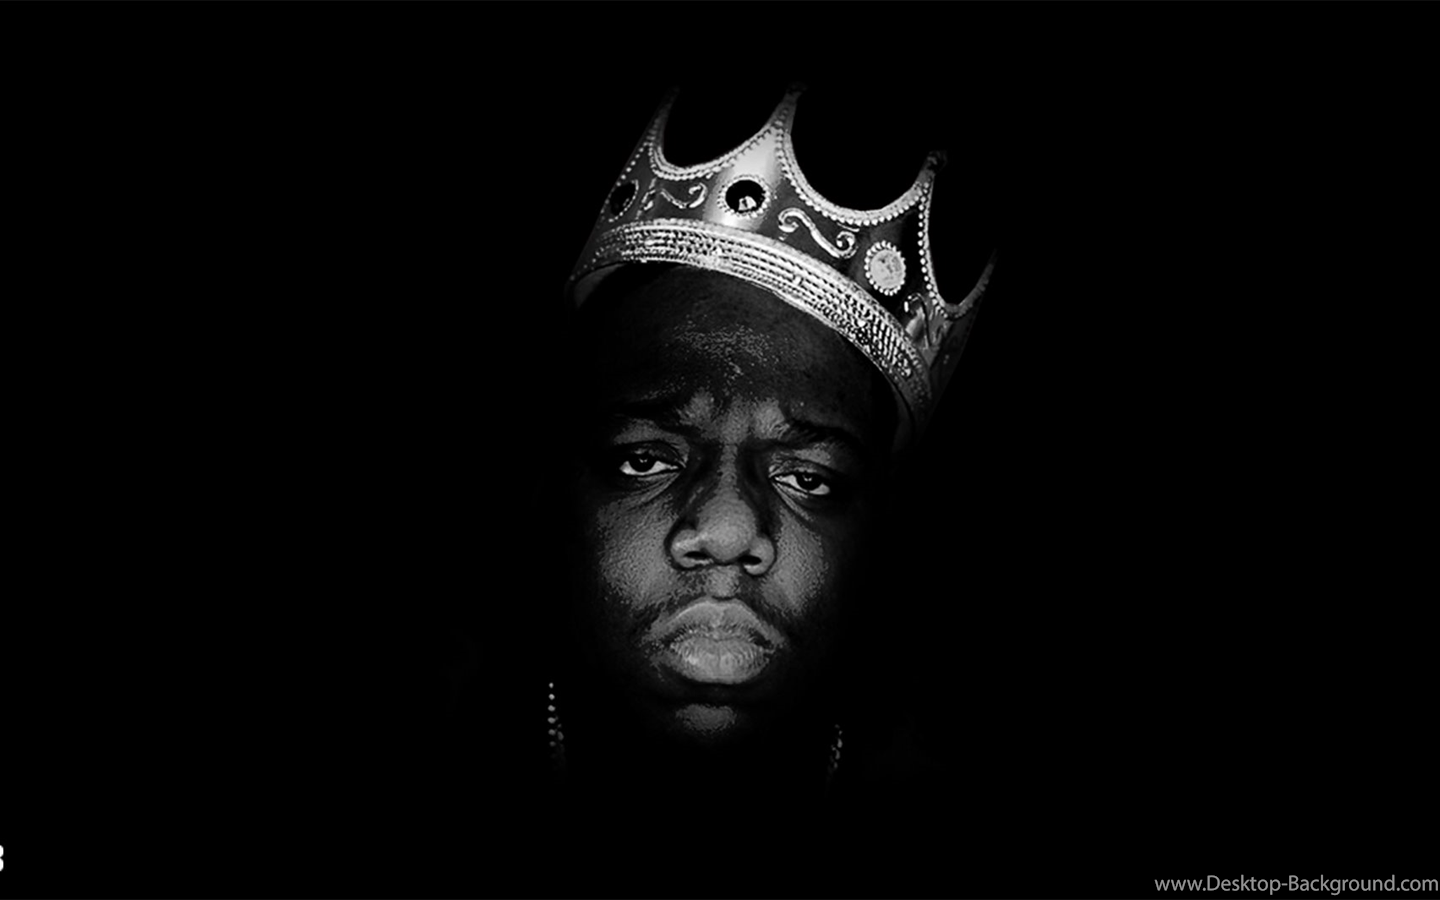 biggie smalls crown picture posted by